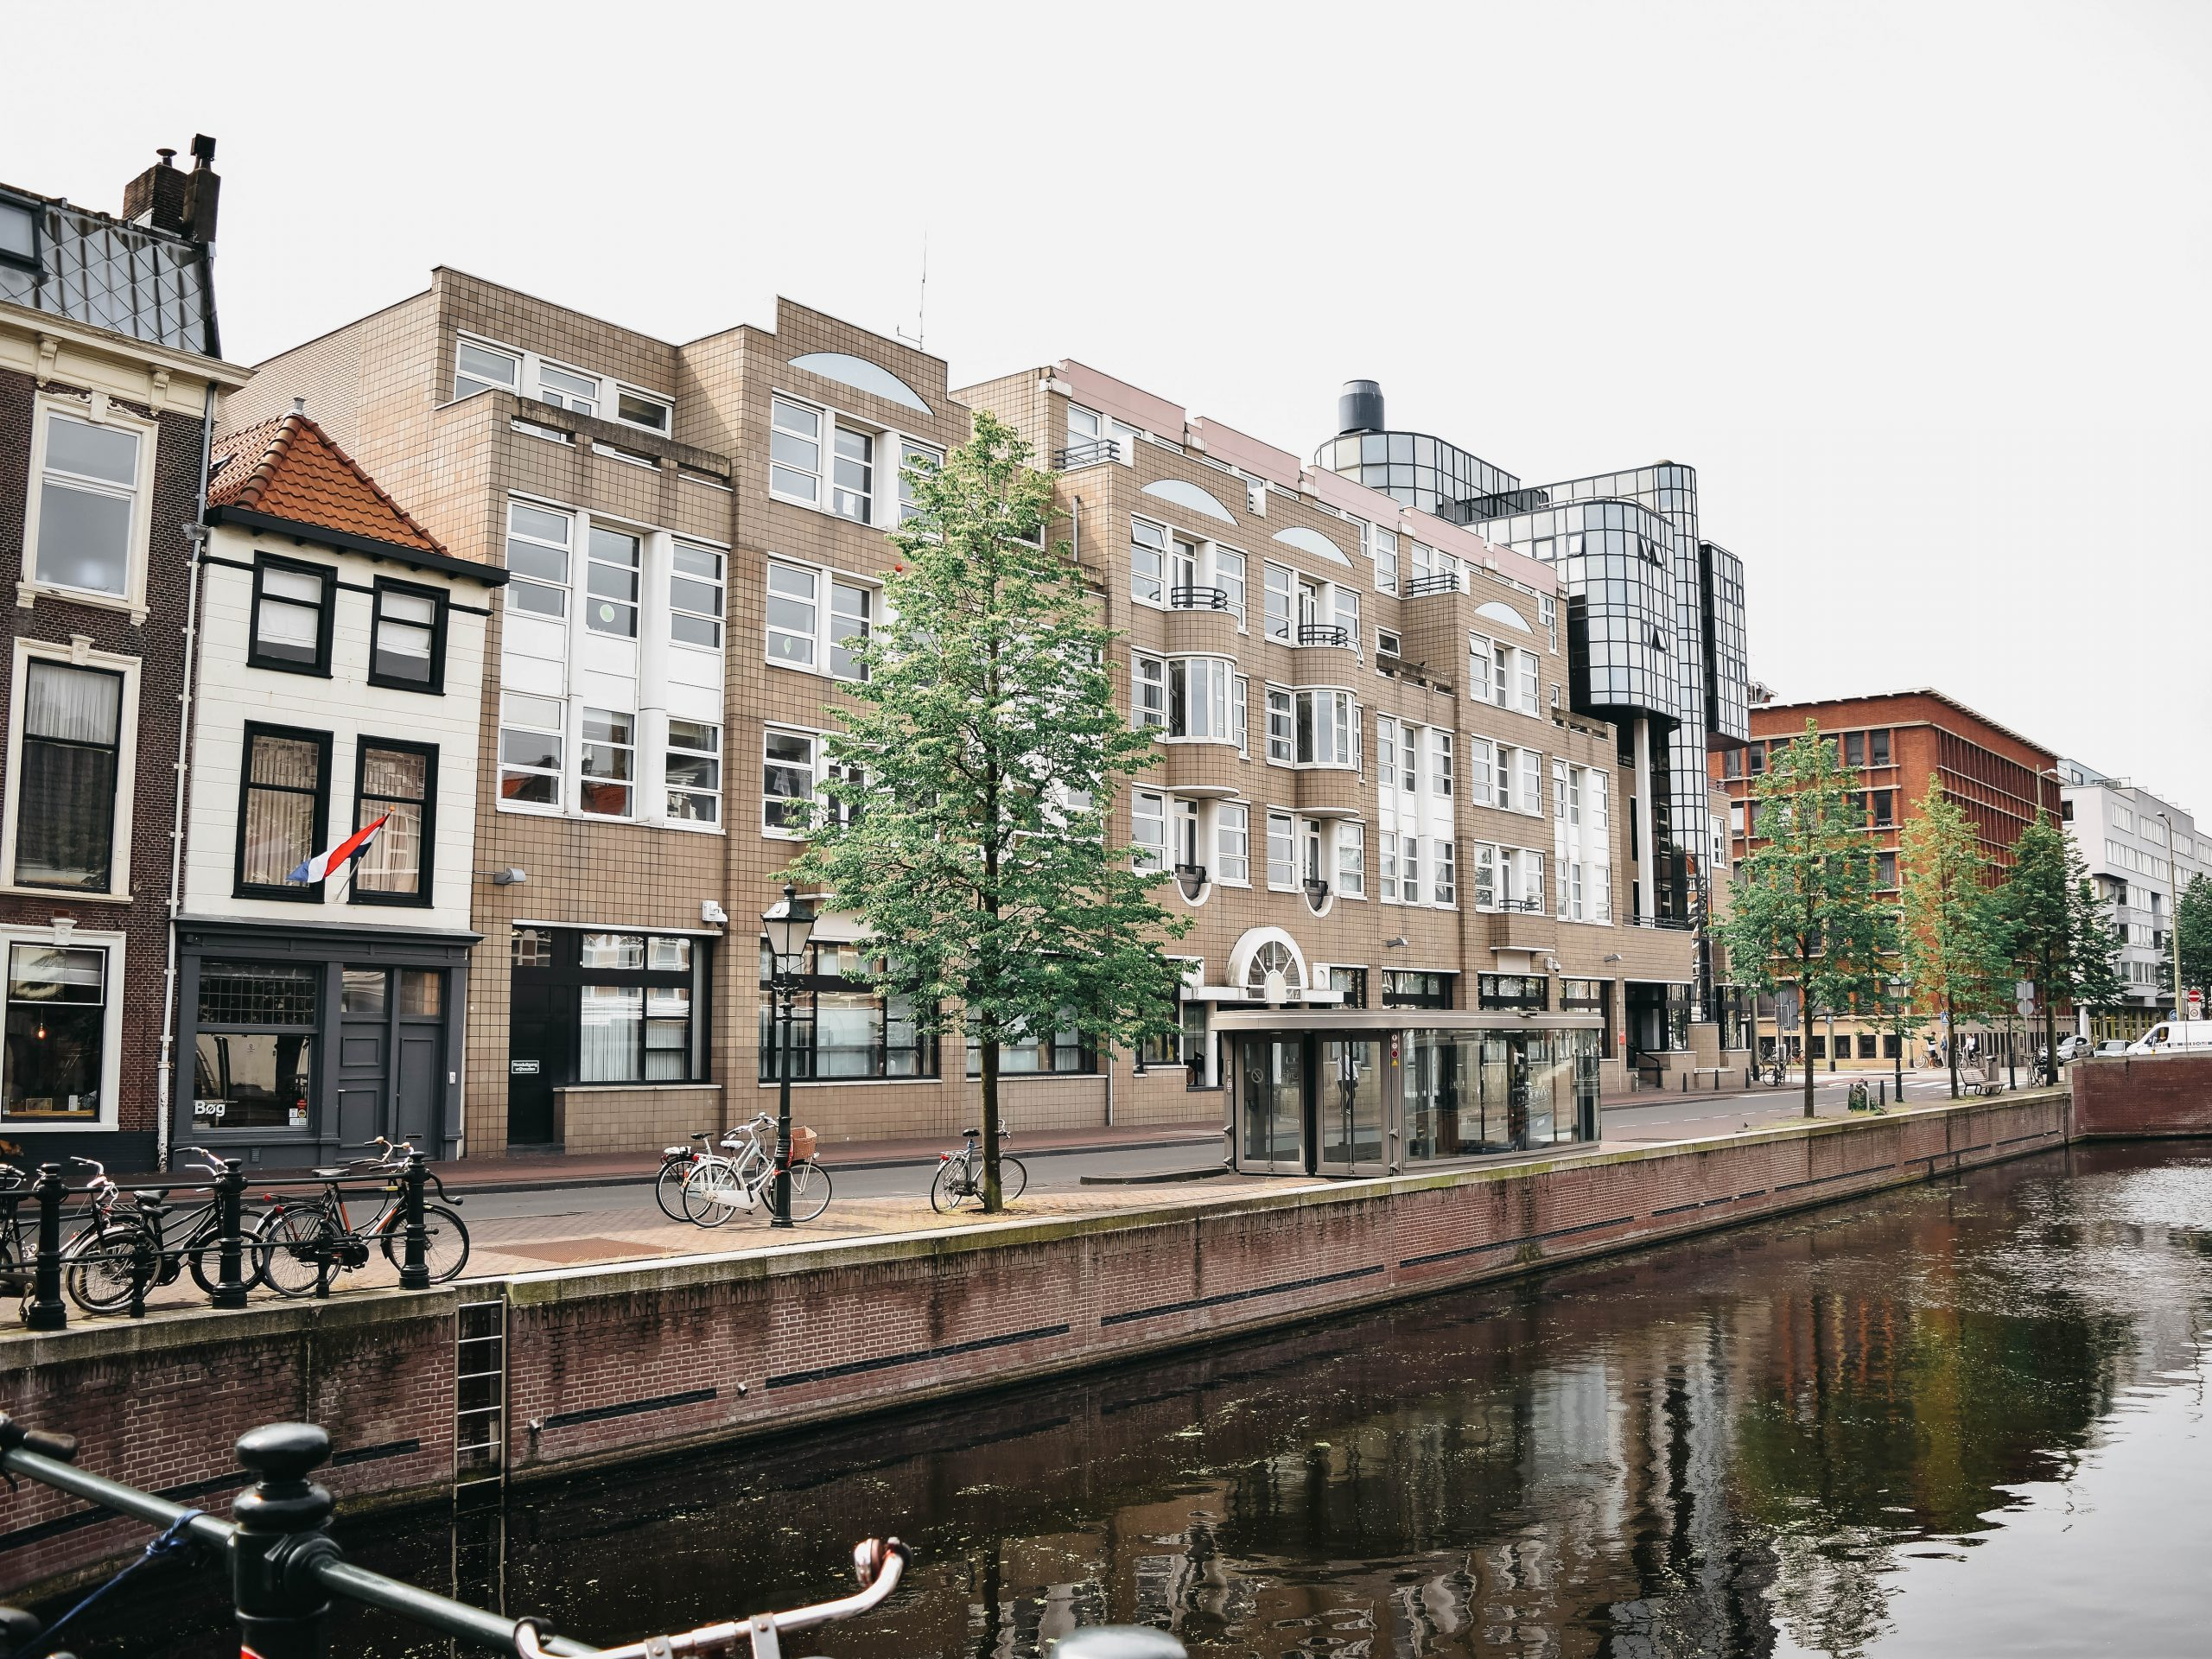 Image for Short trip – The Hague